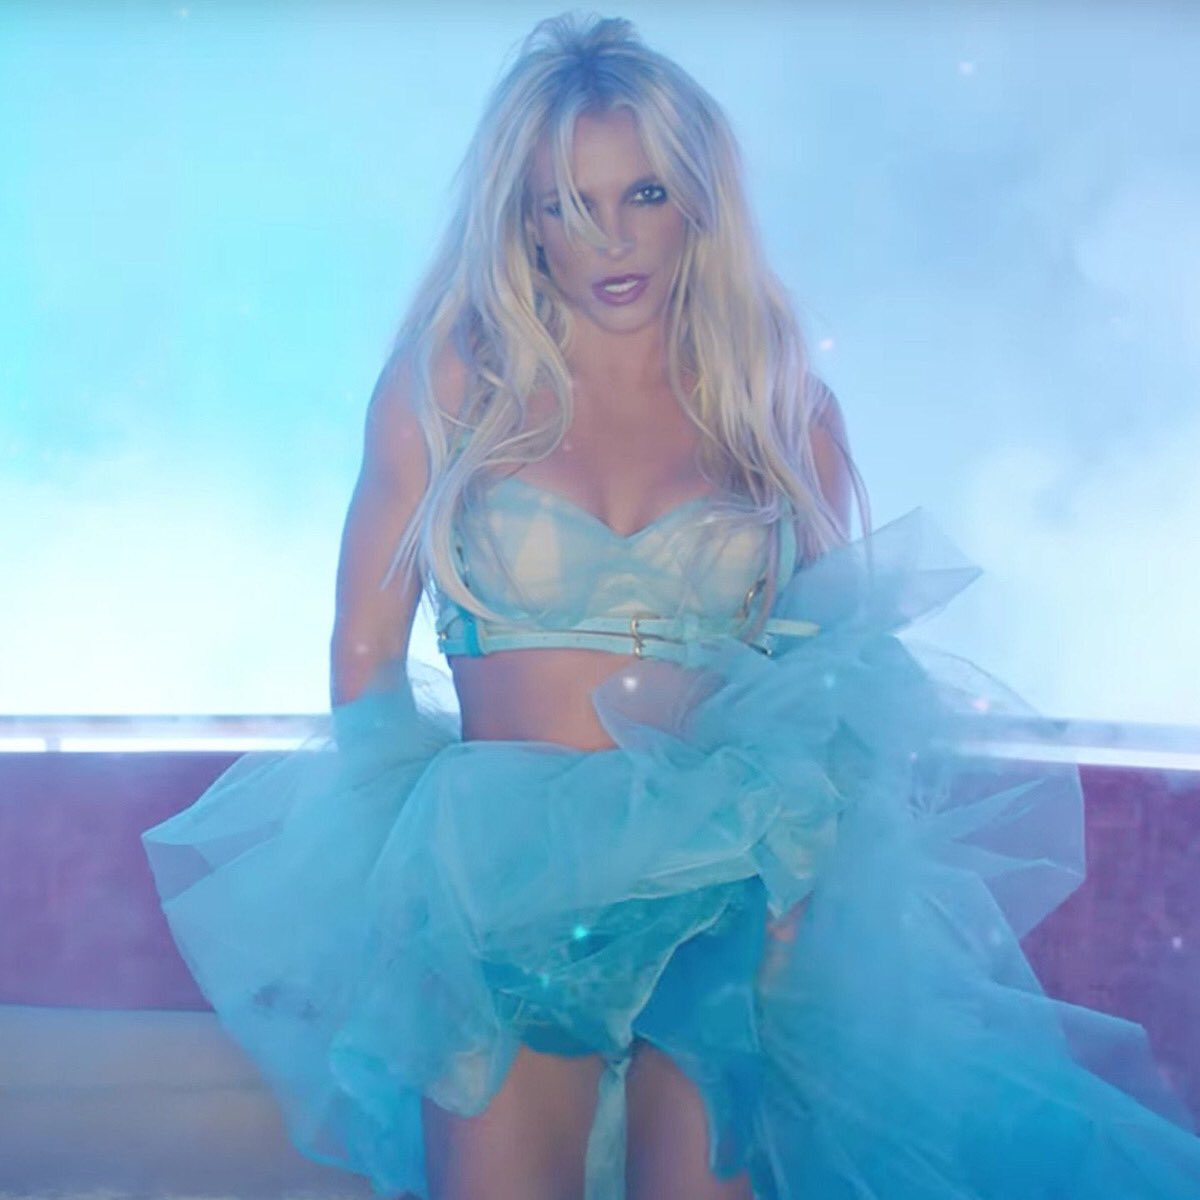 Can't believe it's been a year since the #SlumberParty video was released! This was my favorite scene and outfit!! https://t.co/7YzWb2IZ5l